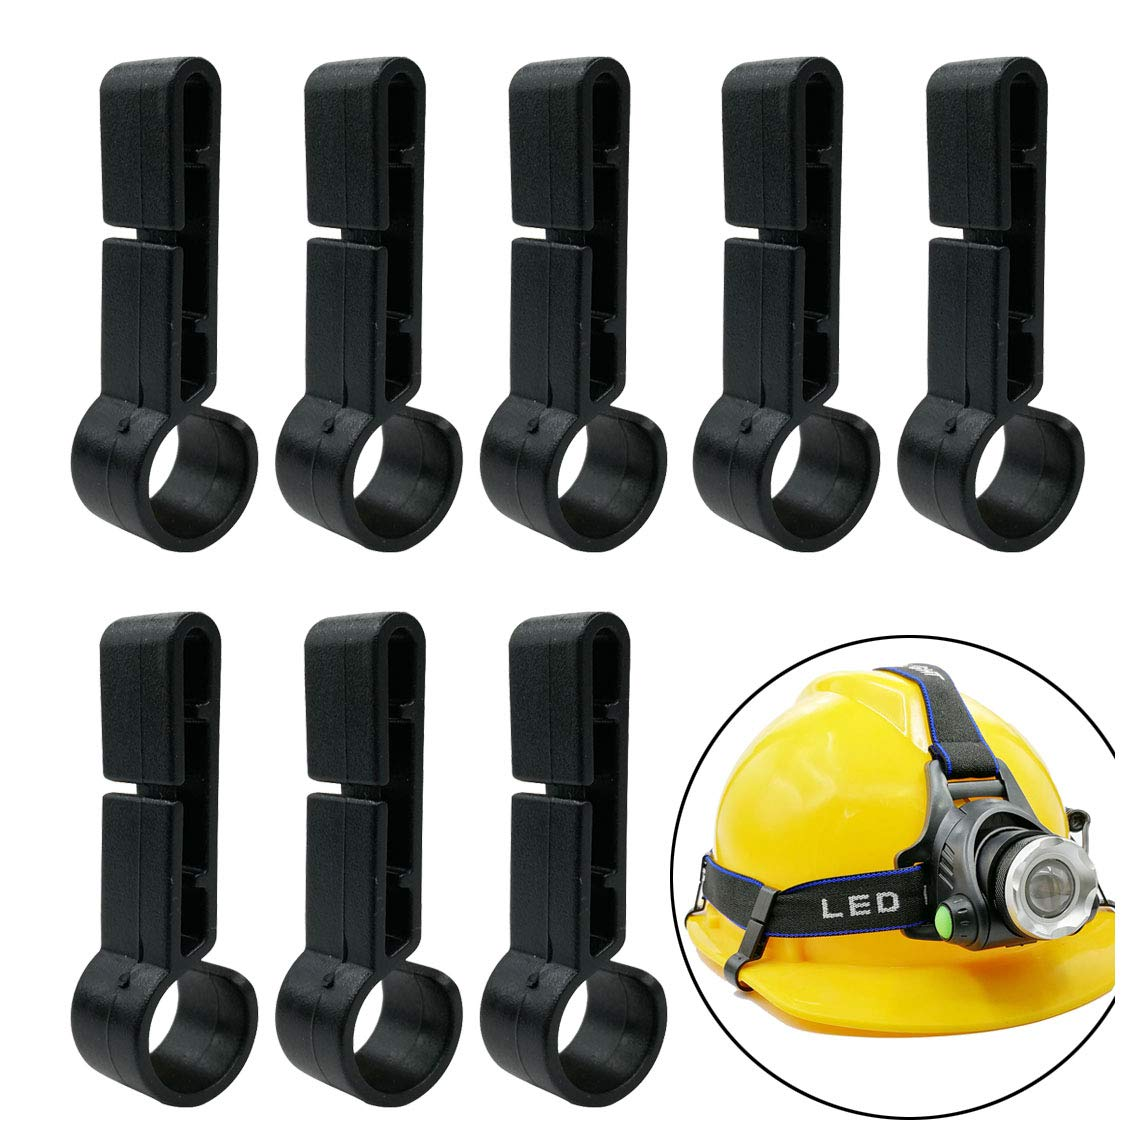 GuangTouL Hardhats Clips, 8 pieces Helmet Headlamp Clips Black Hardhat Hooks for Various Headlamp and Hard Hat